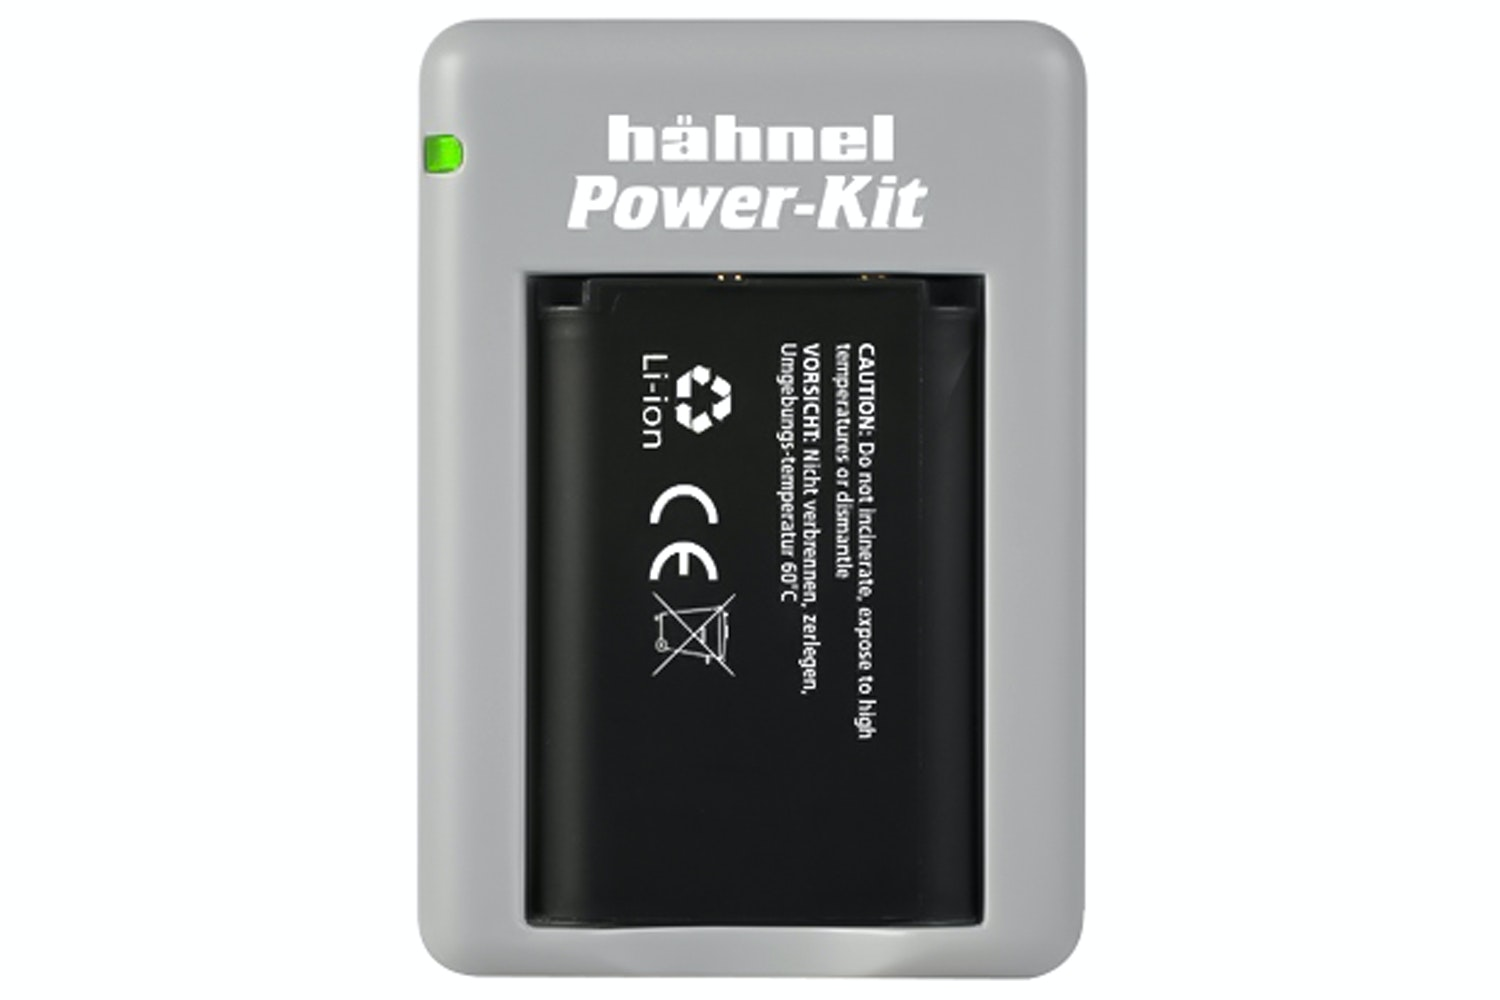 Hahnel Power Kit Dual Charger for Sony